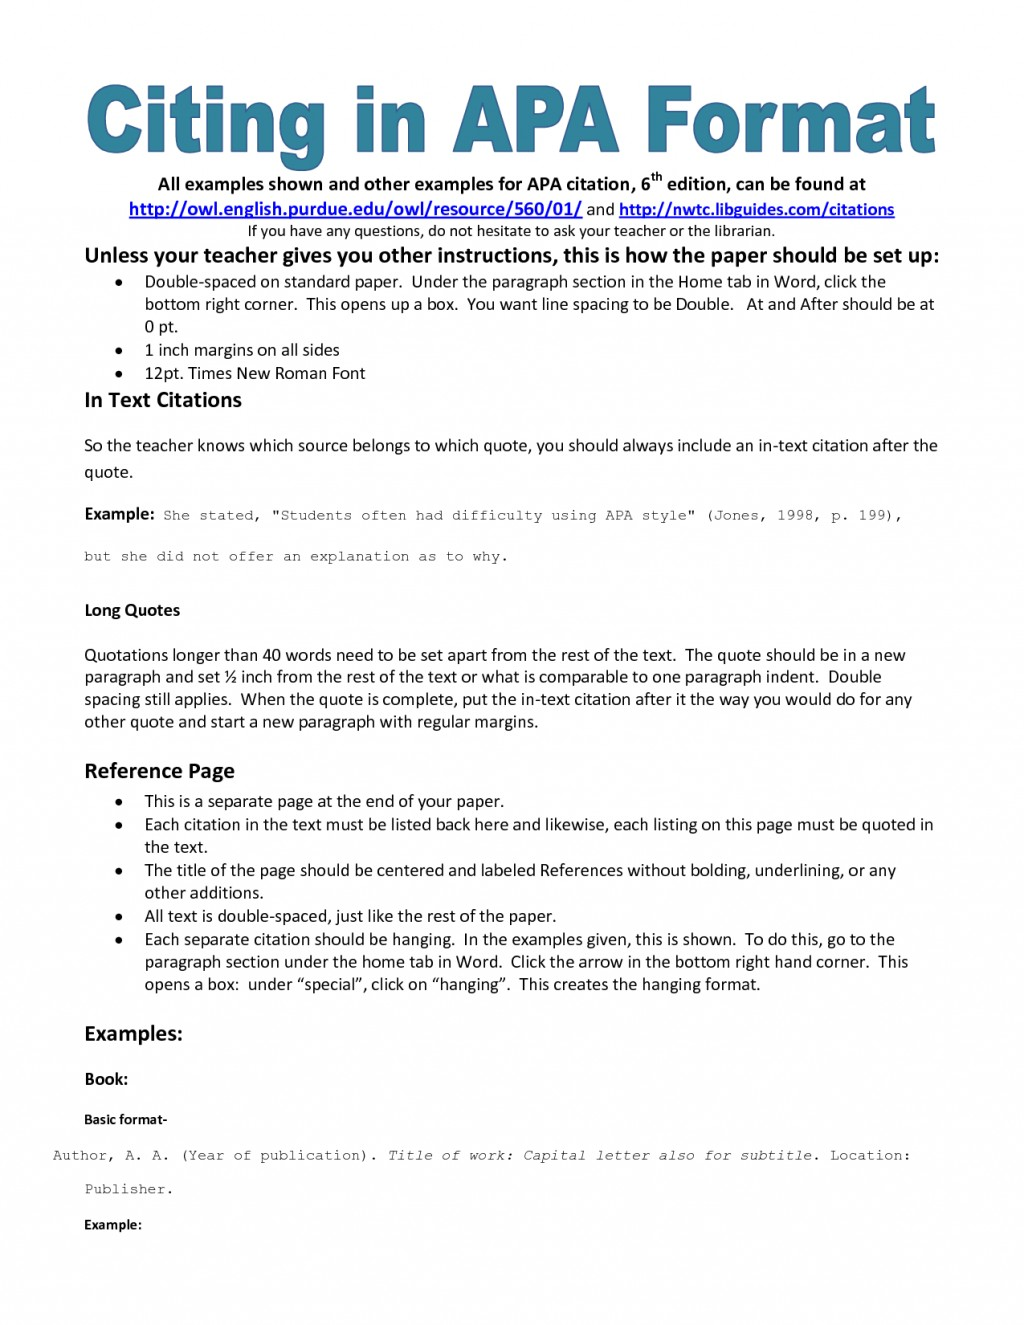 017 Research Paper Guide For Writing Apa Style Papers Excellent A Large